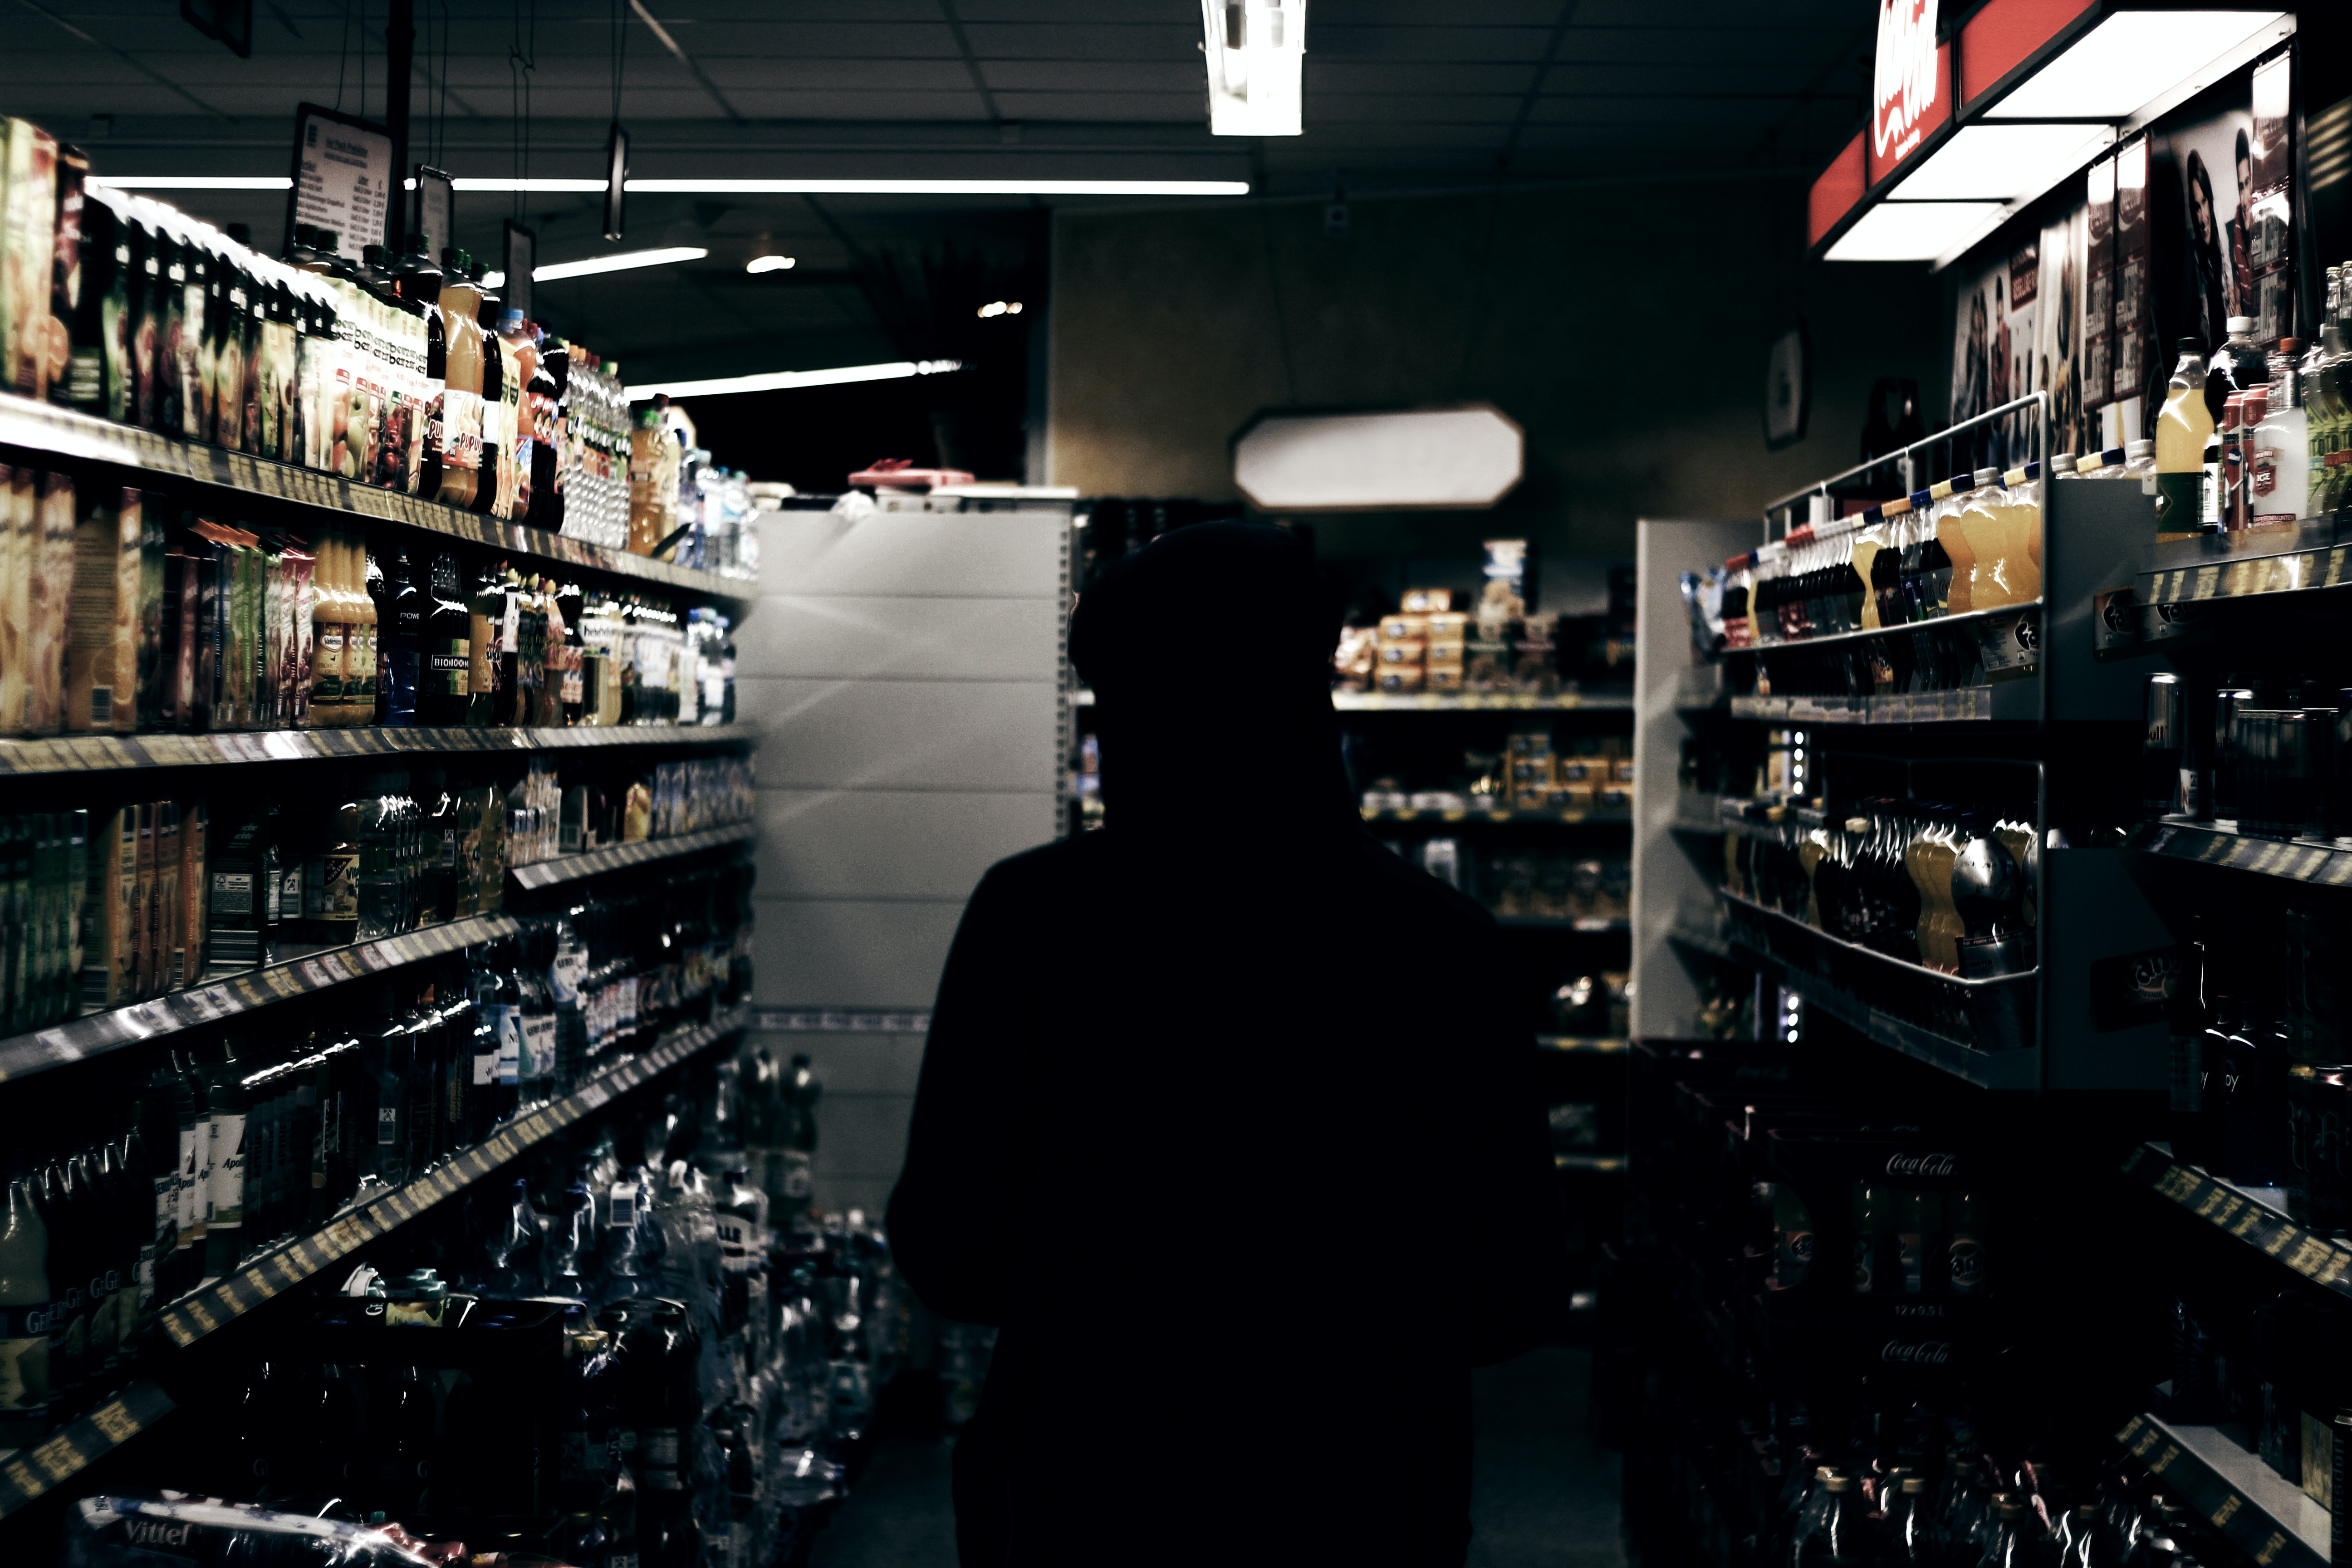 A man wearing black standing in a market next to shelves containing alcohol drinks in silhouette